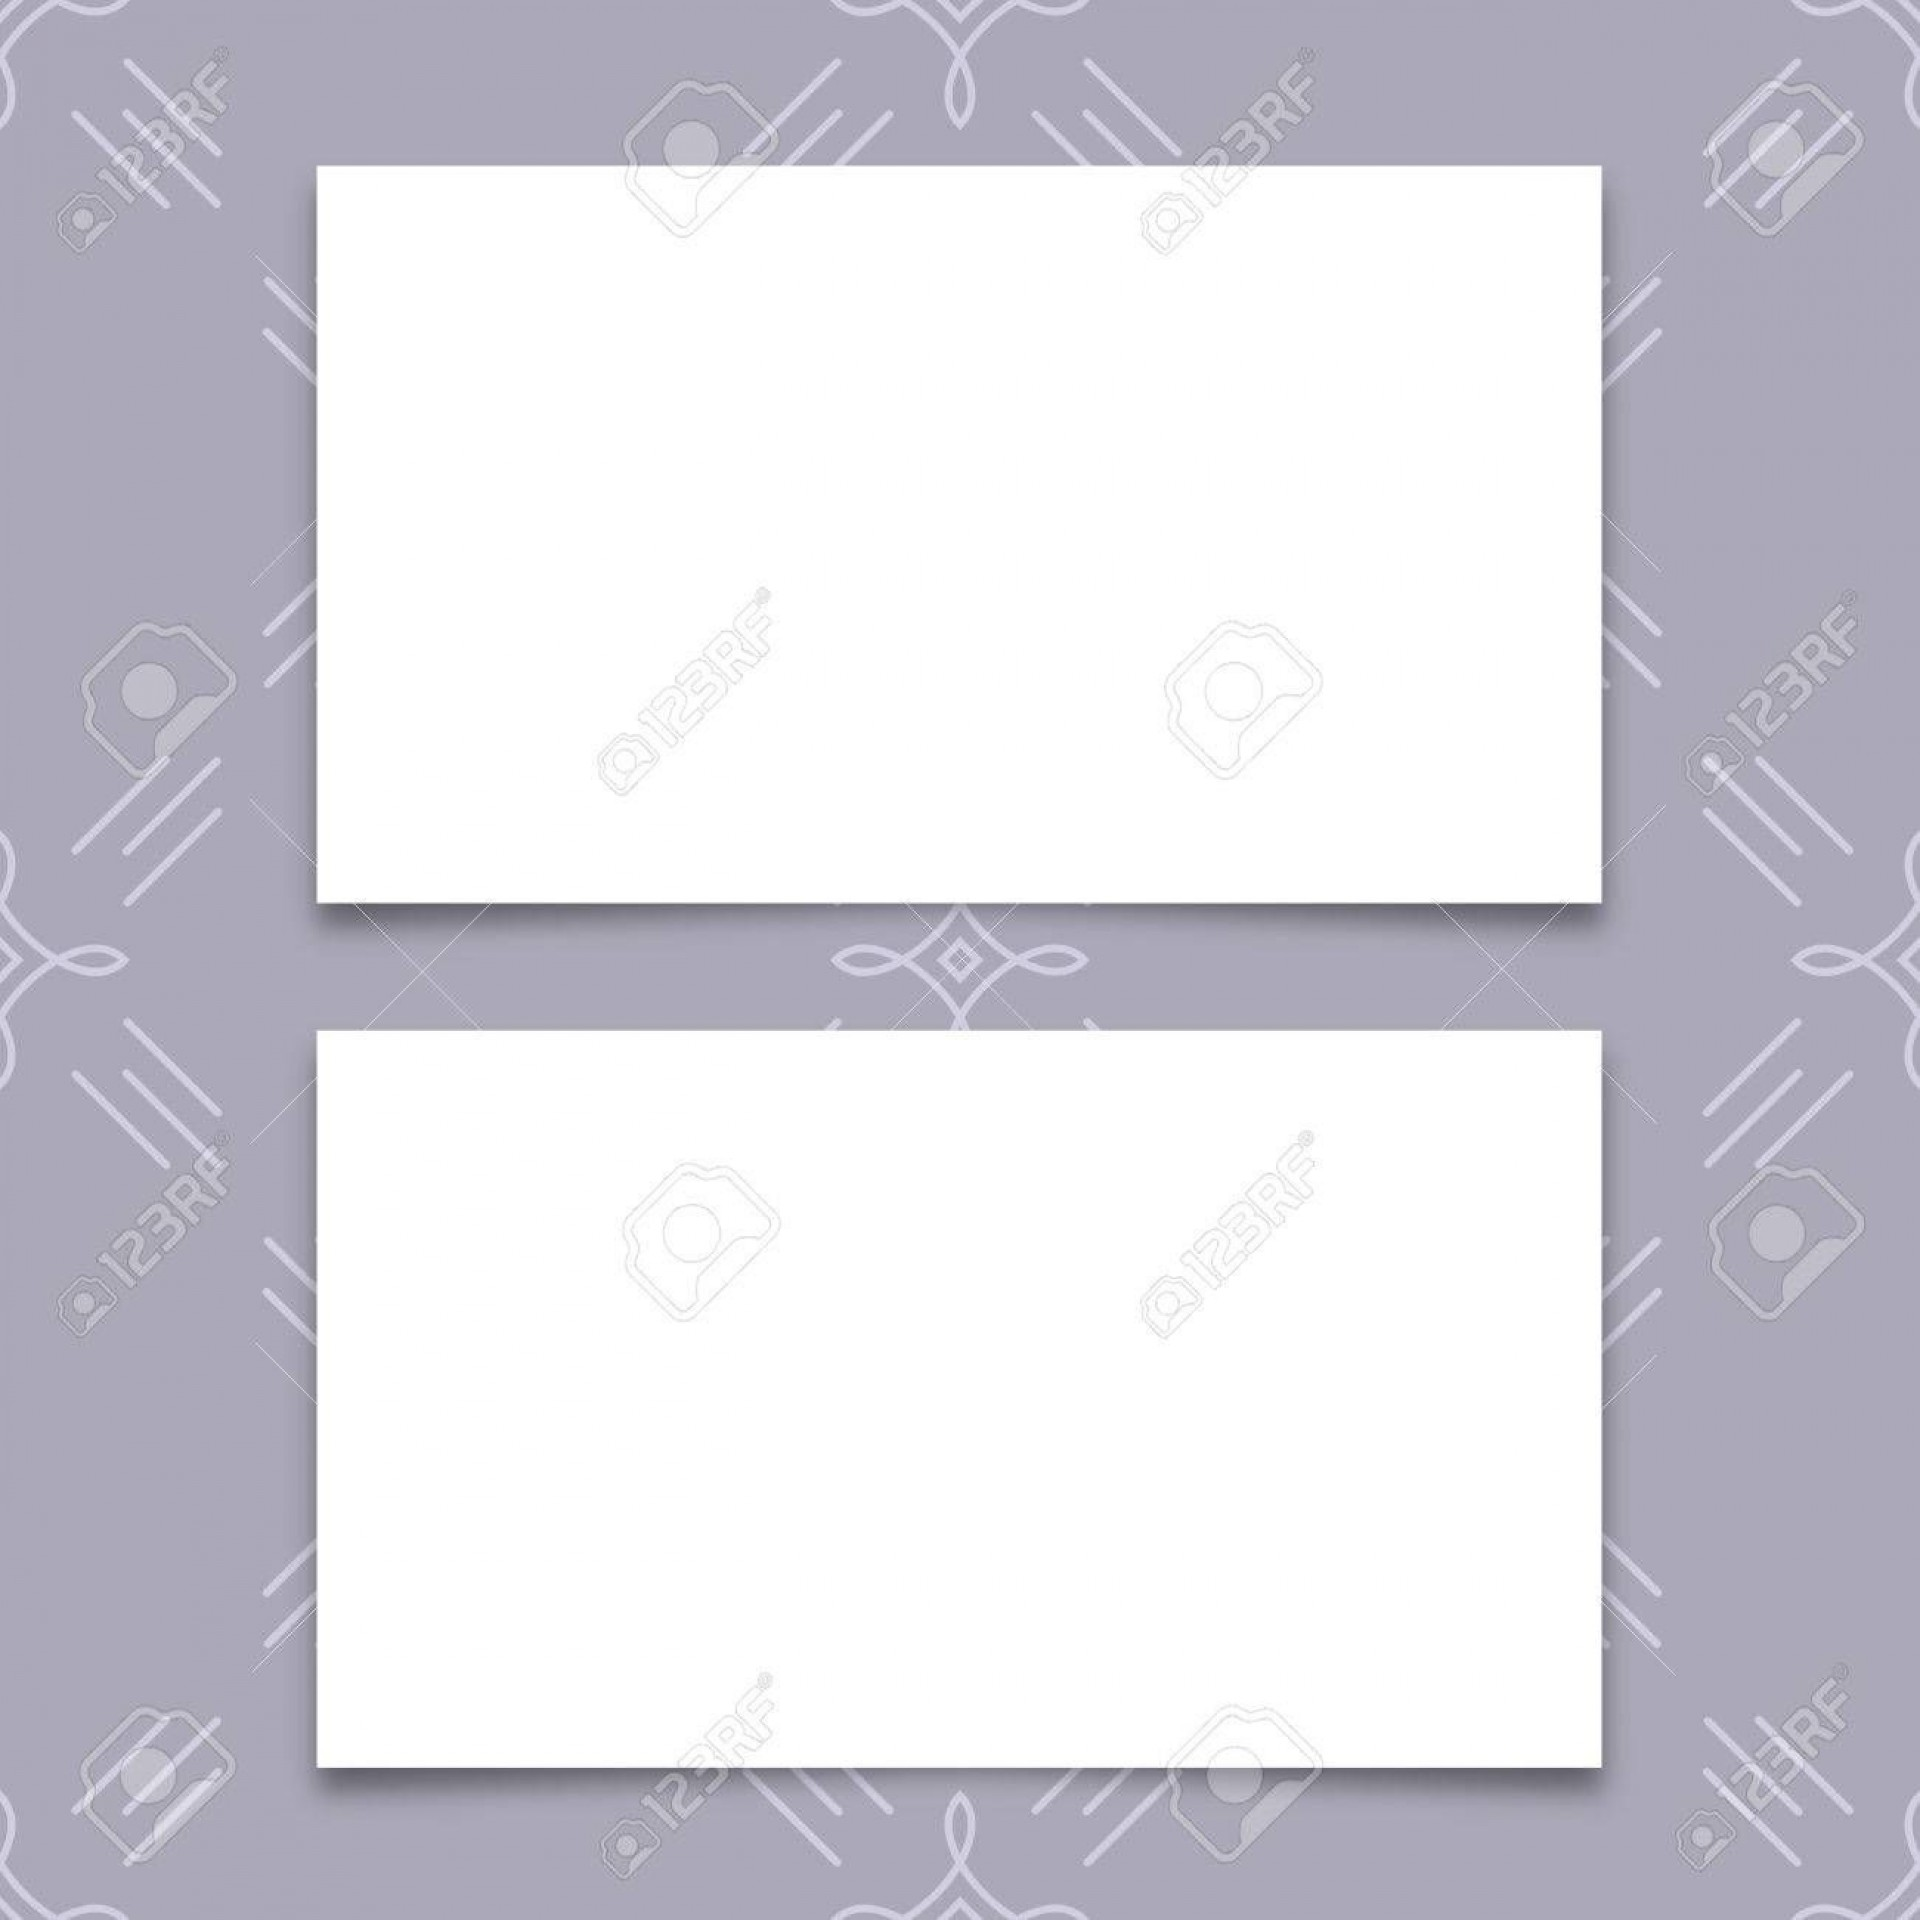 002 Awesome Free Blank Busines Card Template High Def  Templates Online Printable For Word Download1920